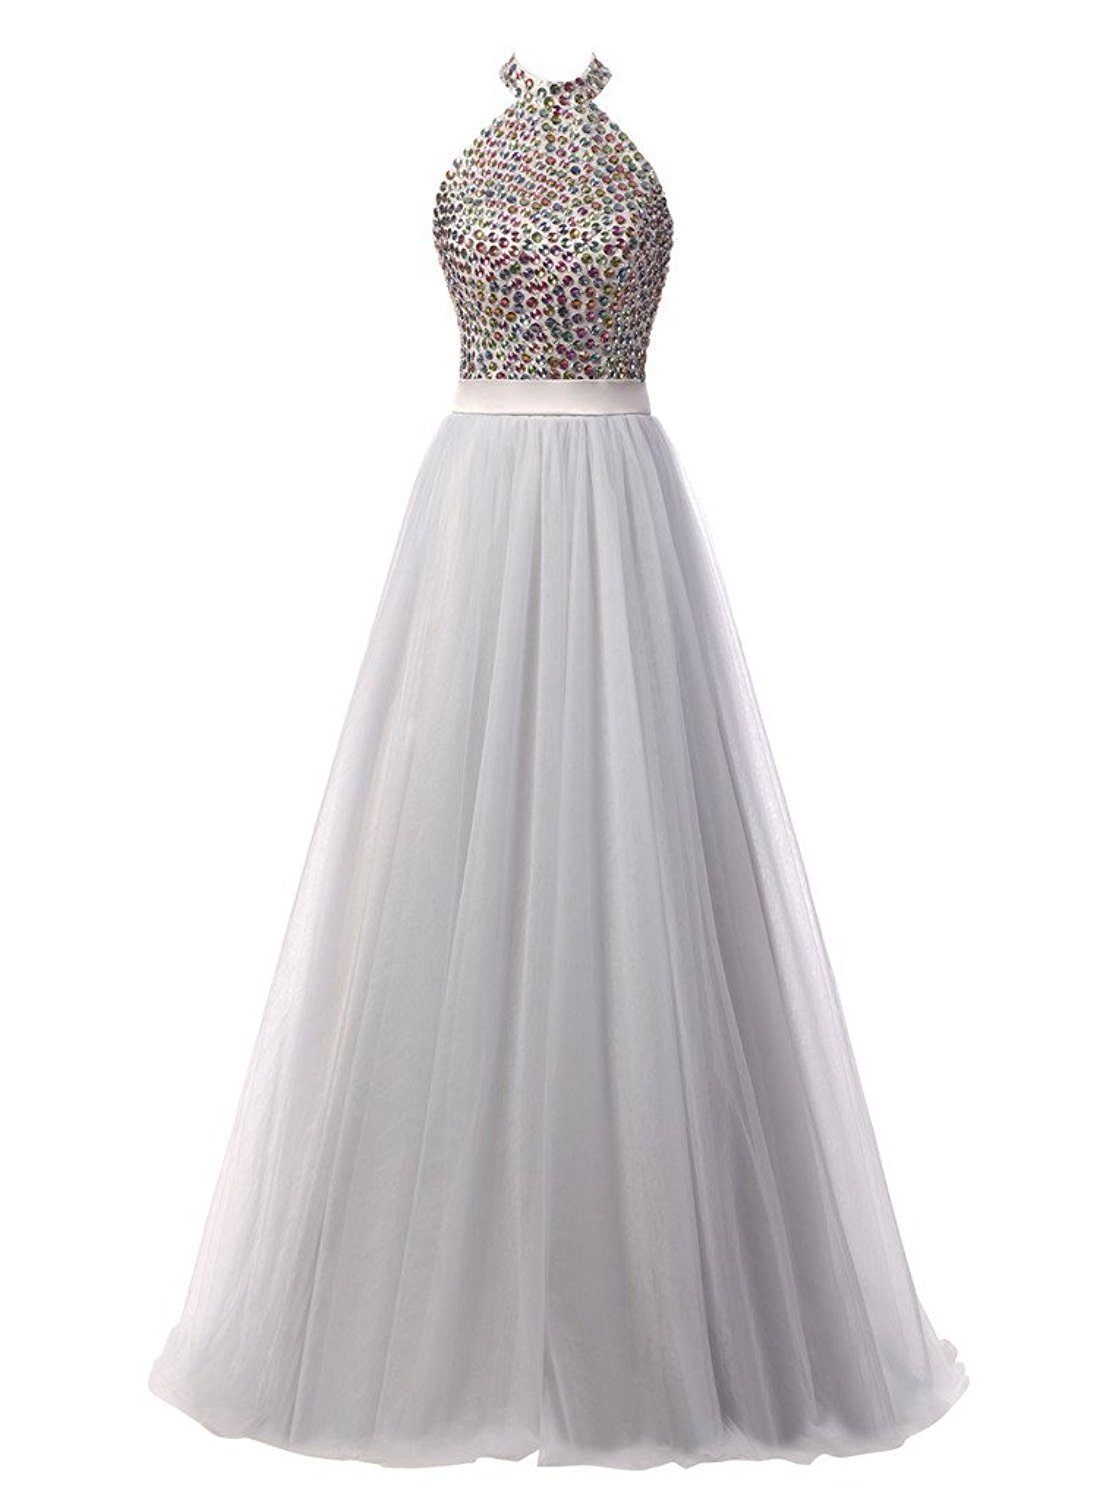 Primary image for Tulle Prom Dress Evening Gown with Beaded Bodice Long White Prom Party Dresses